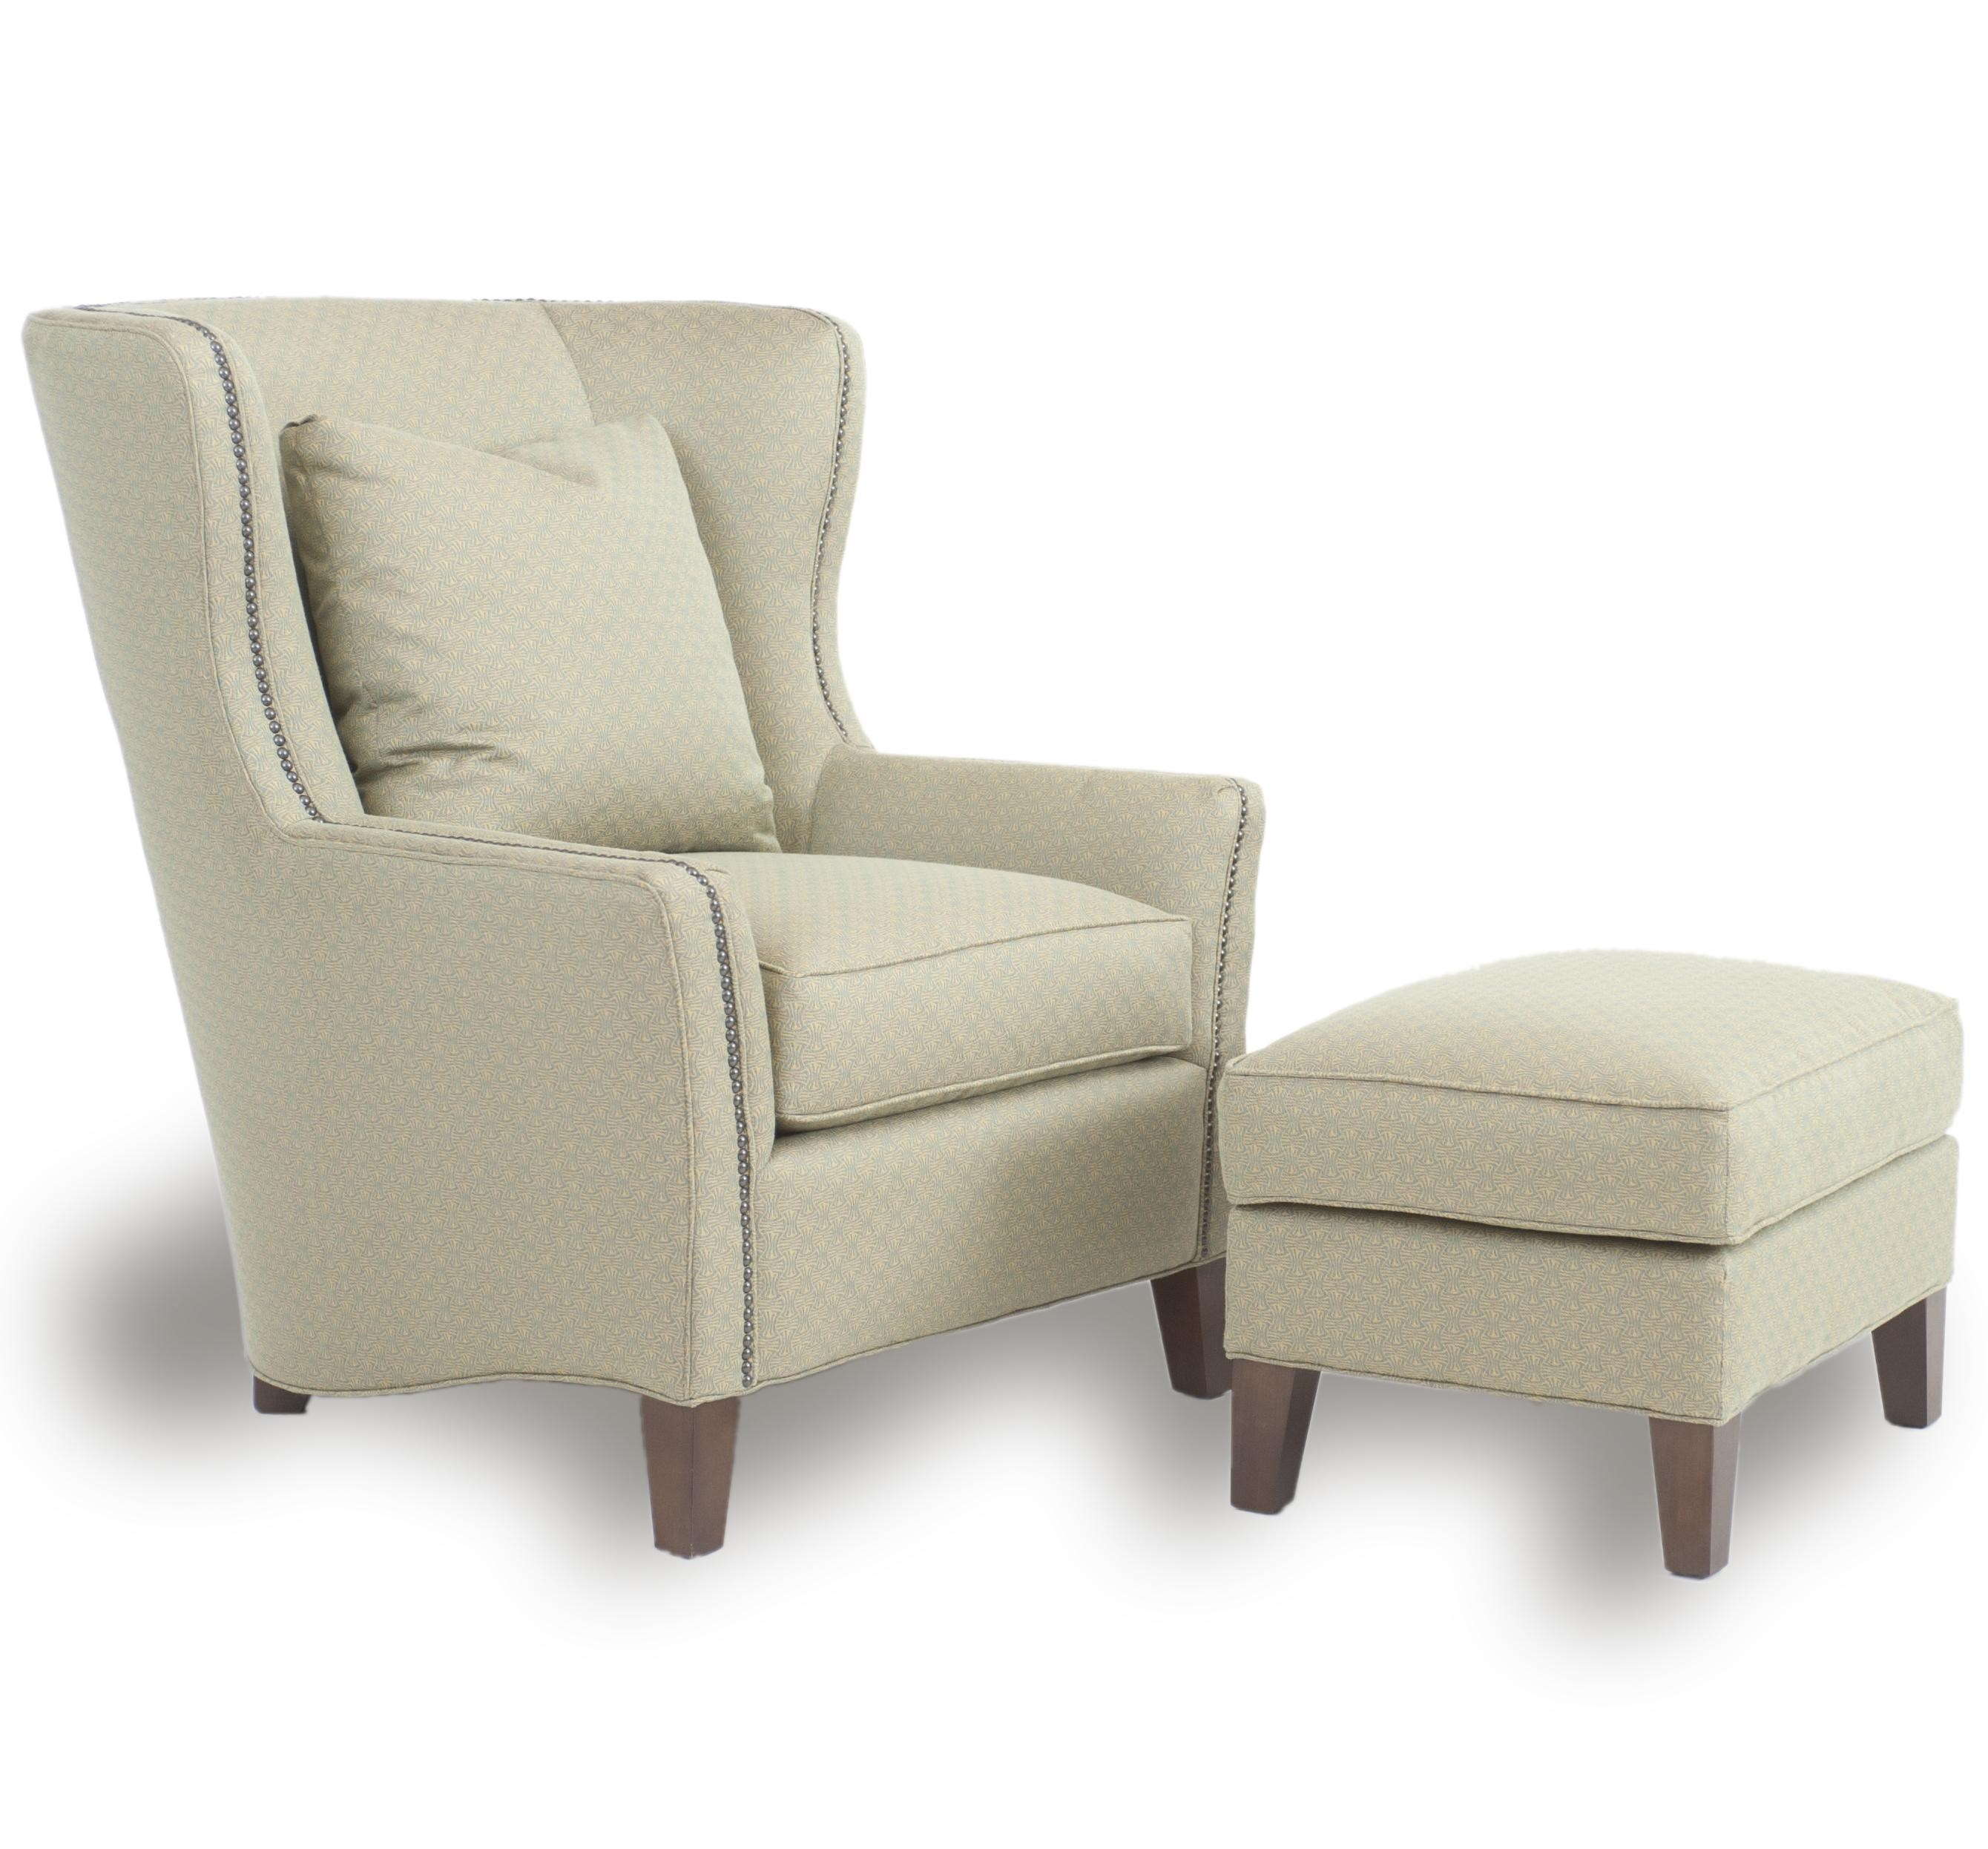 Chair Ottoman Accent Chairs And Ottomans Sb Wingback Chair And Ottoman By Smith Brothers At Dunk Bright Furniture